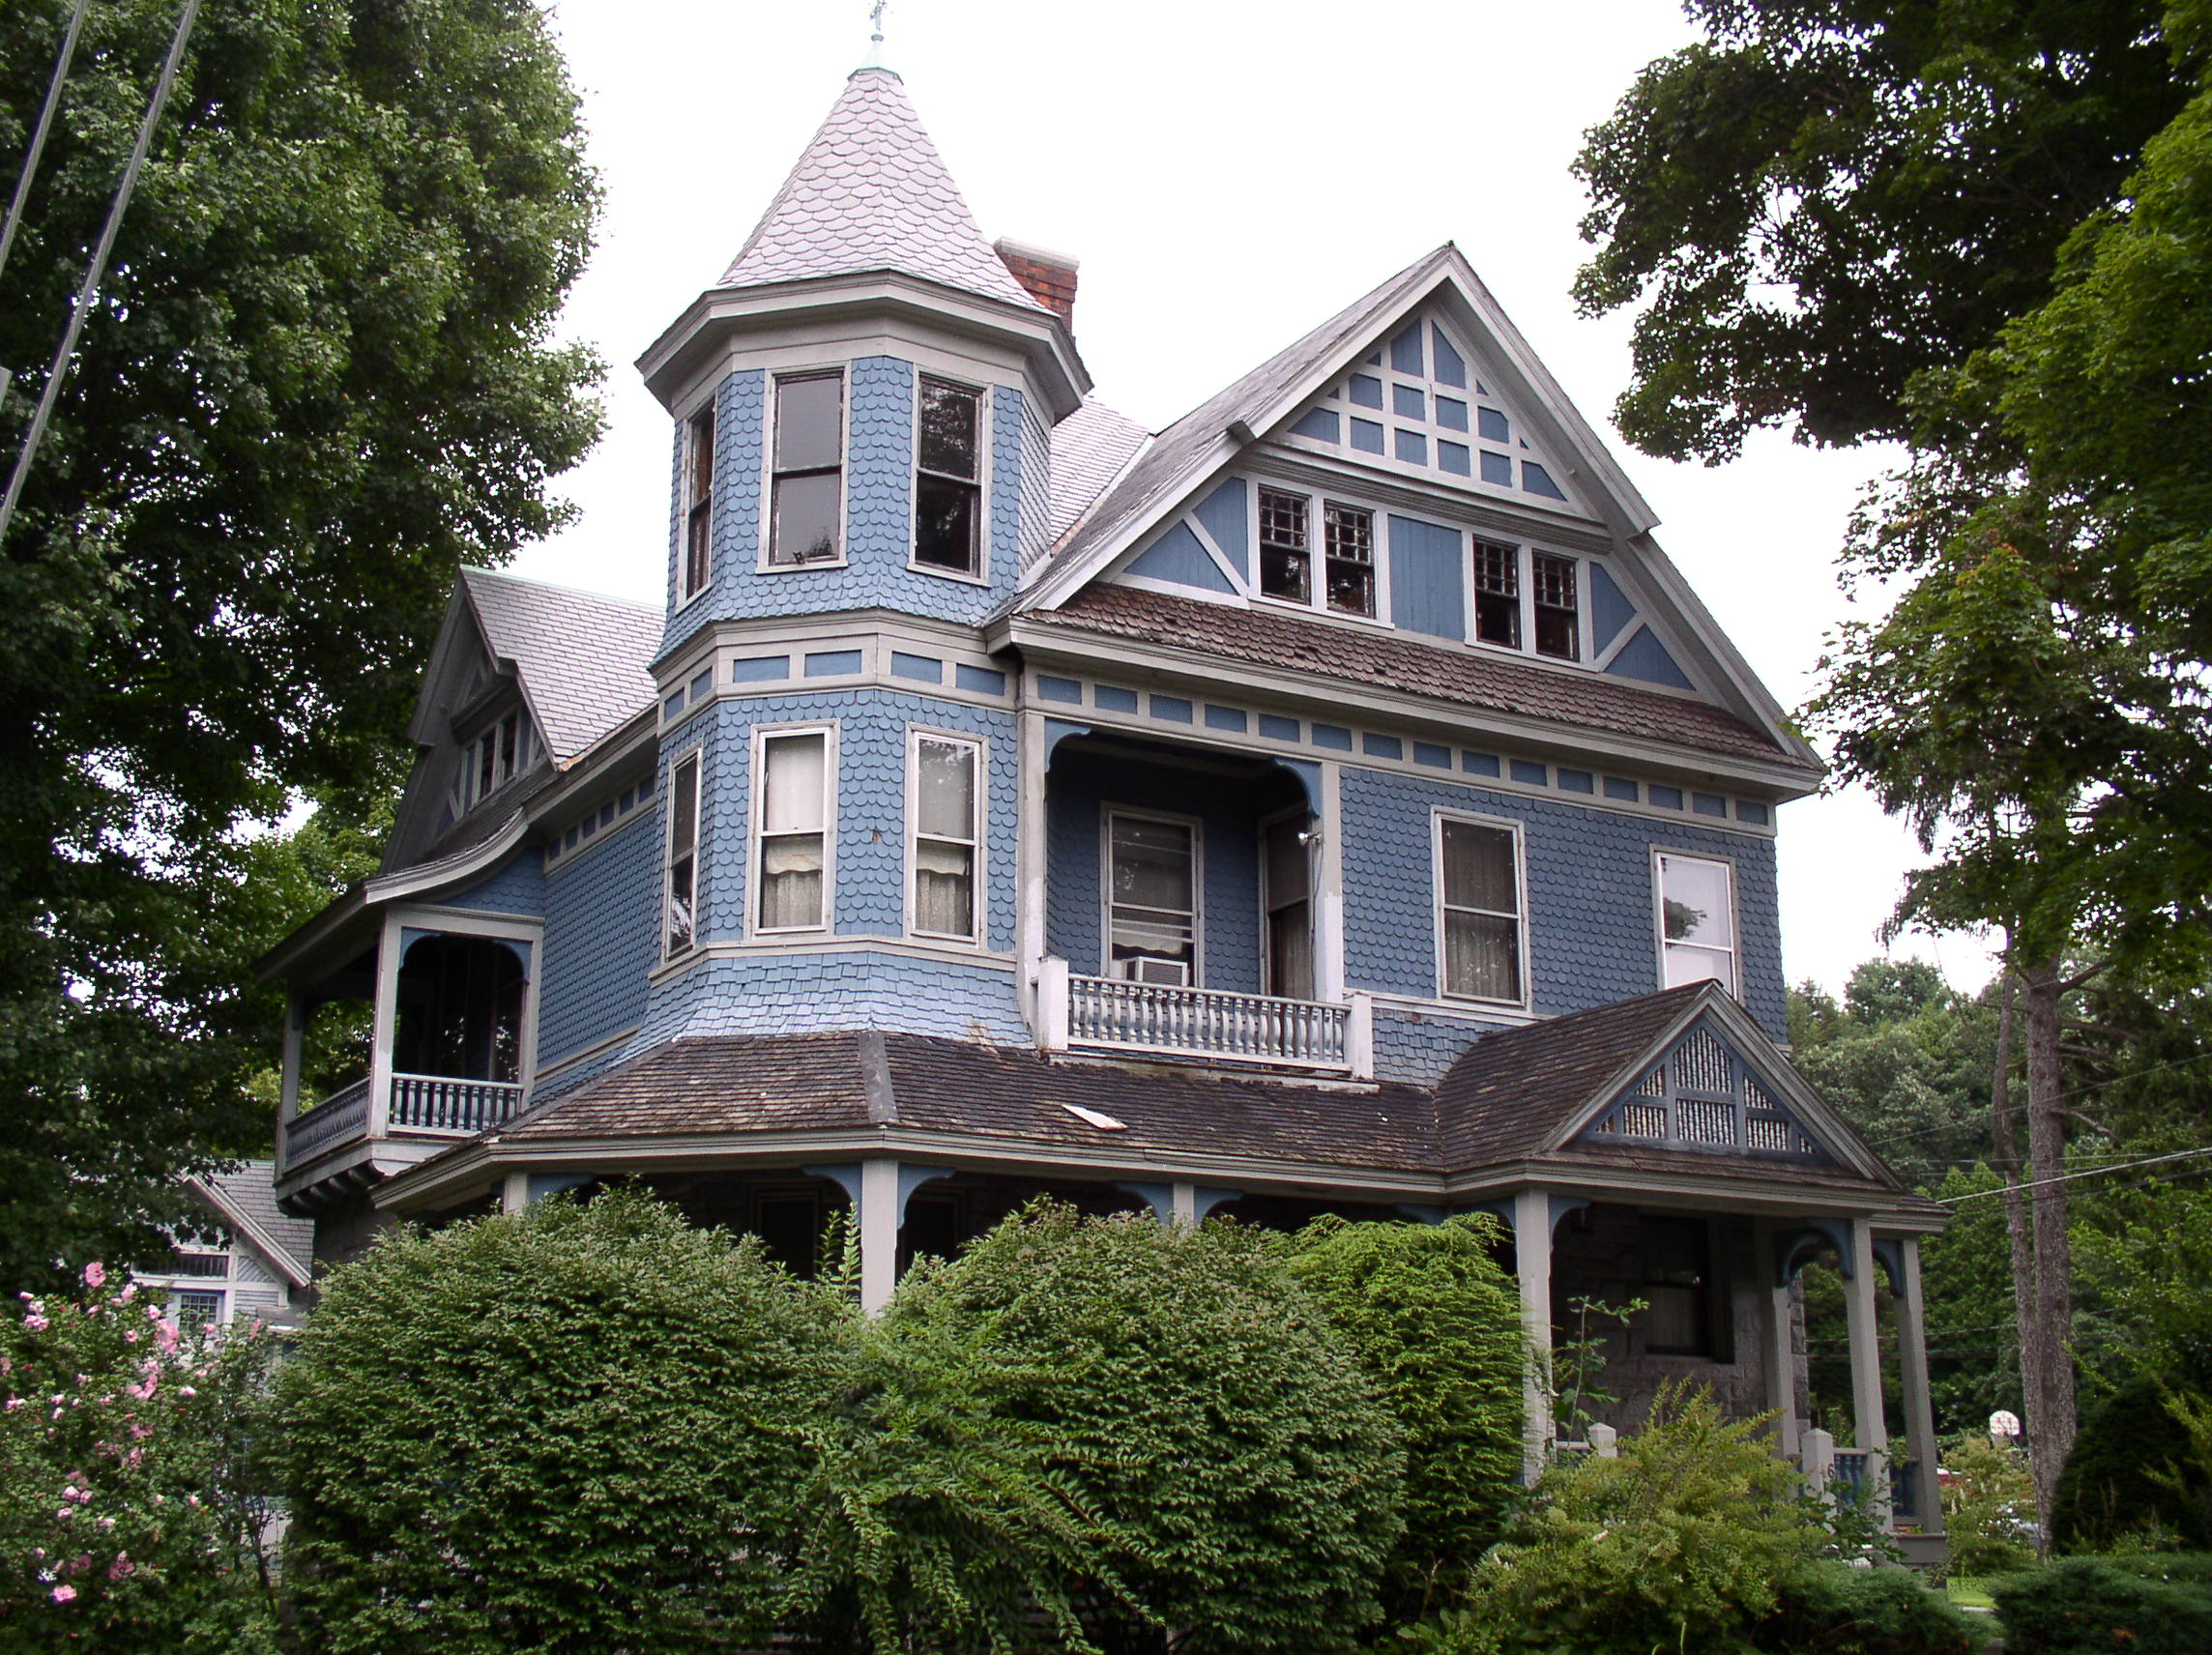 Queen anne architectural styles of america and europe for Queen anne windows